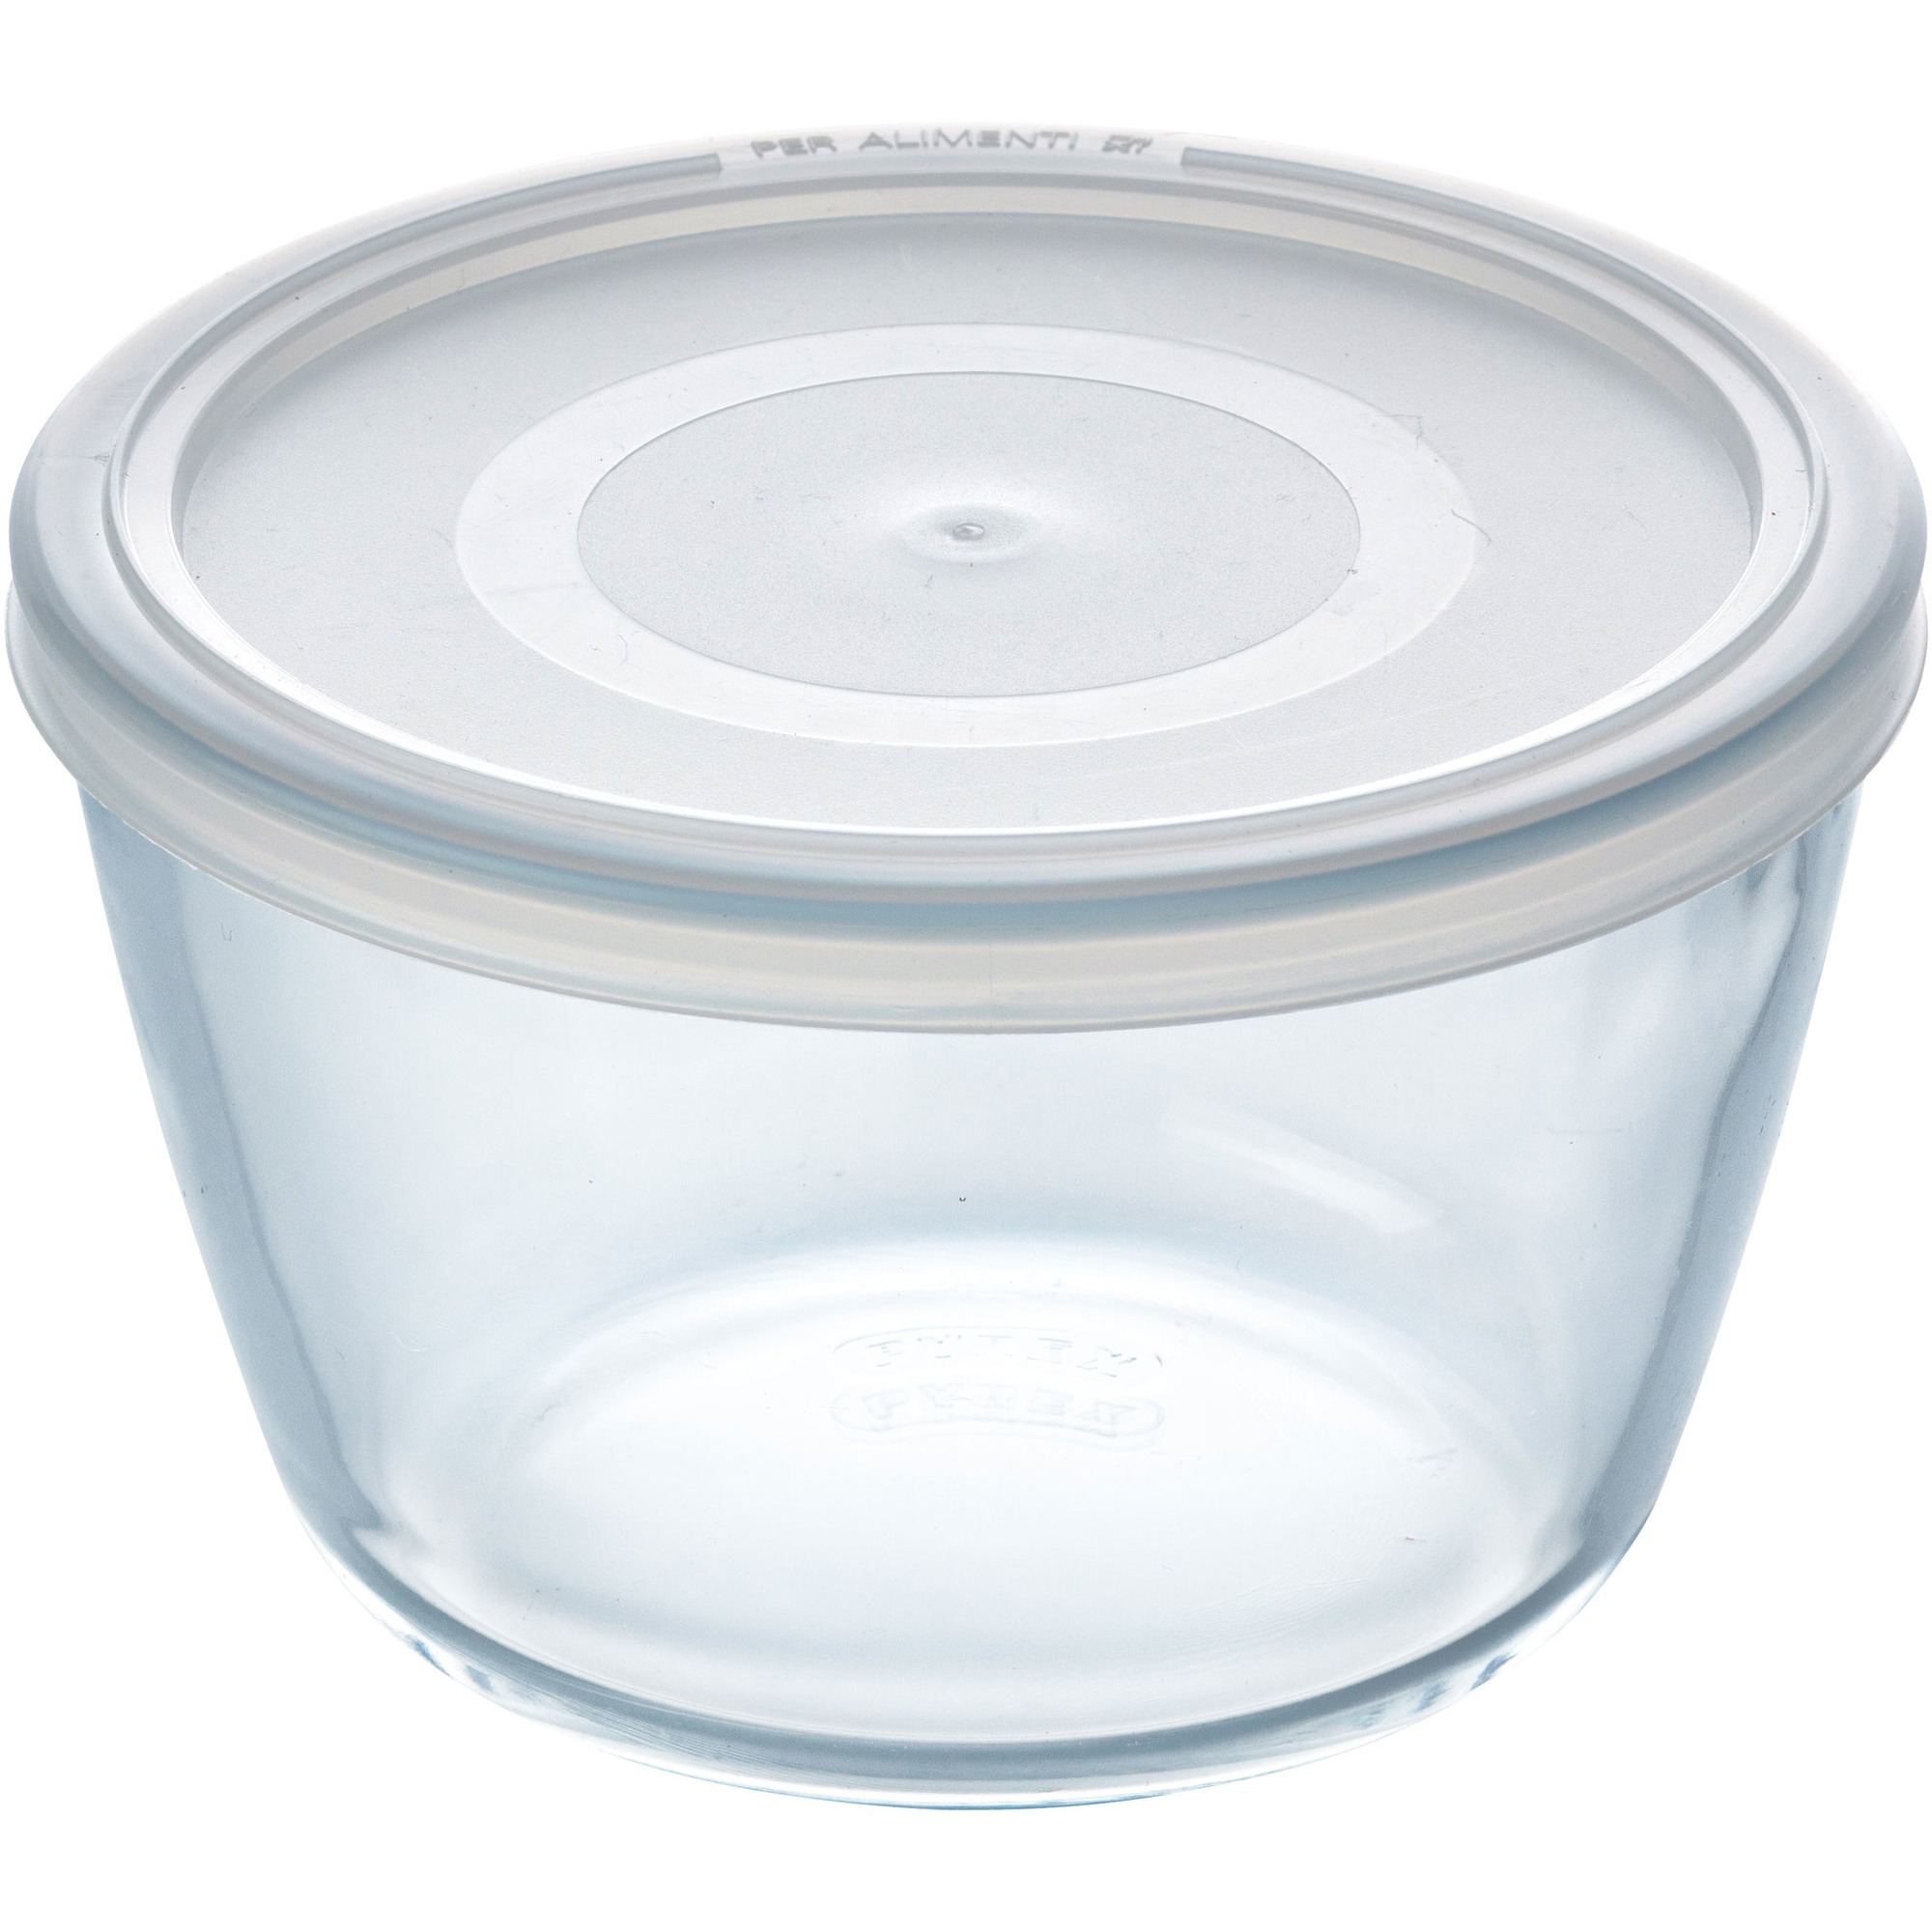 Pyrex Cook & Freeze Ugnsform med Lock/Matlåda 15×7 cm 11 l